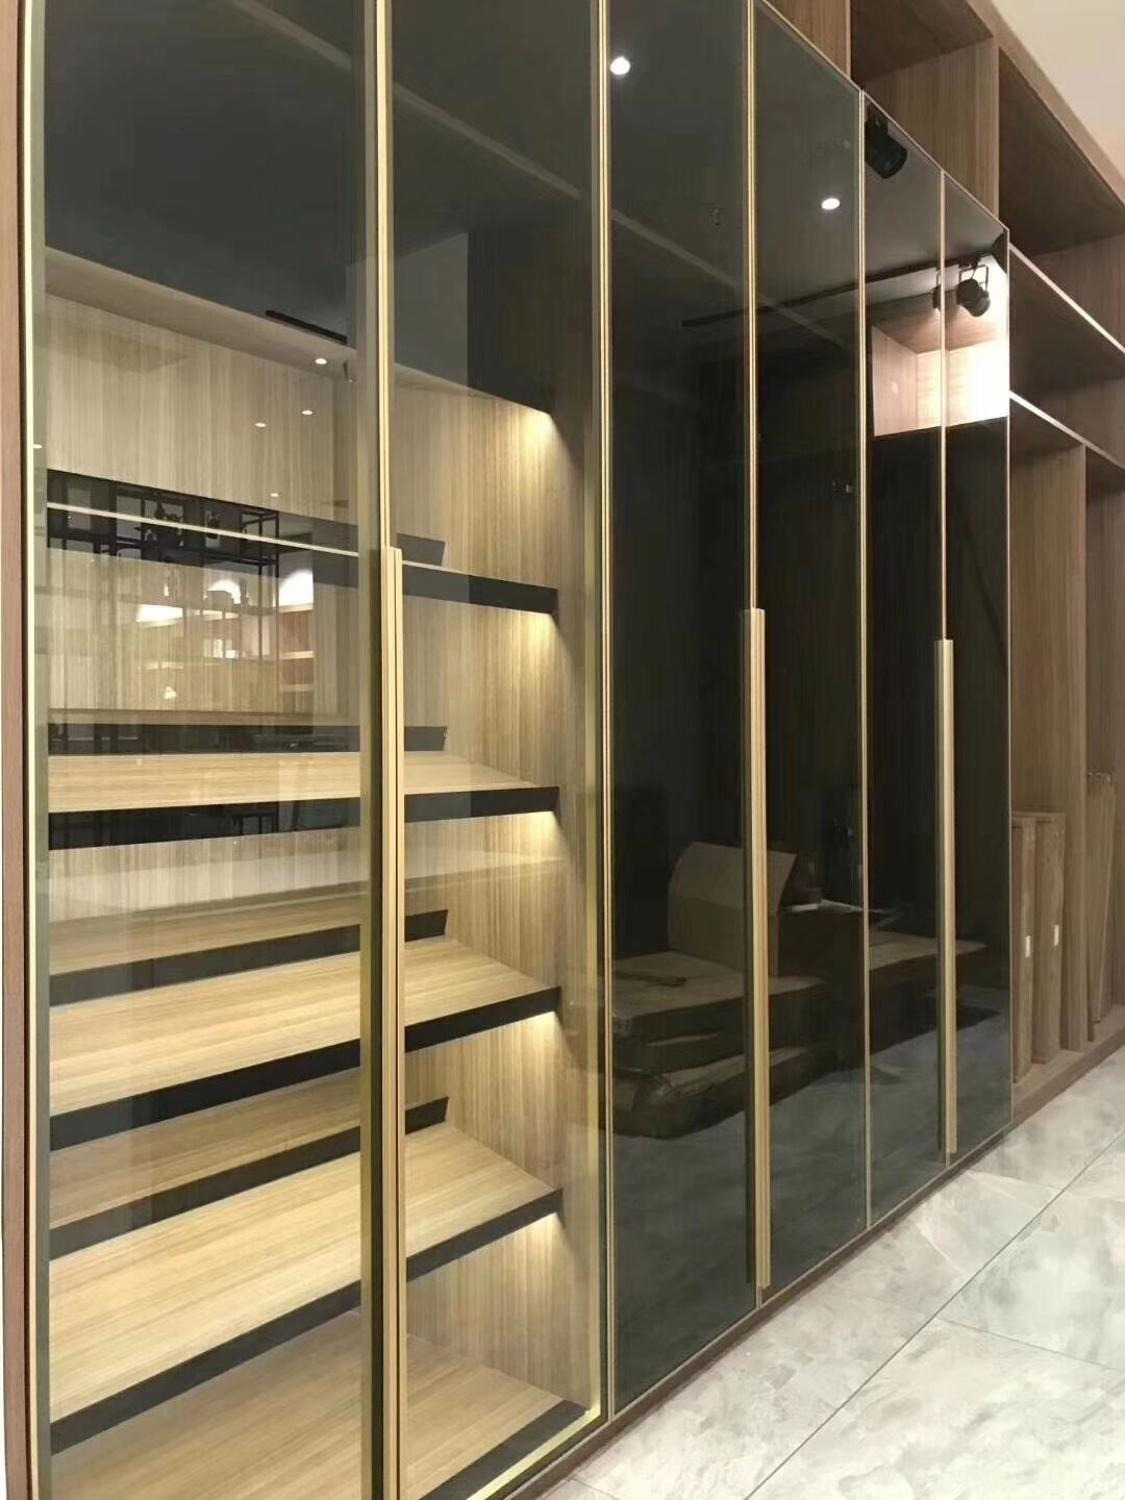 Aluminum Cabinet Doors Awesome Us $7 83 Off Uke Glass Front Extruded Square Aluminum Cabinet Door Frame with Integrated Handle Furniture Accessories